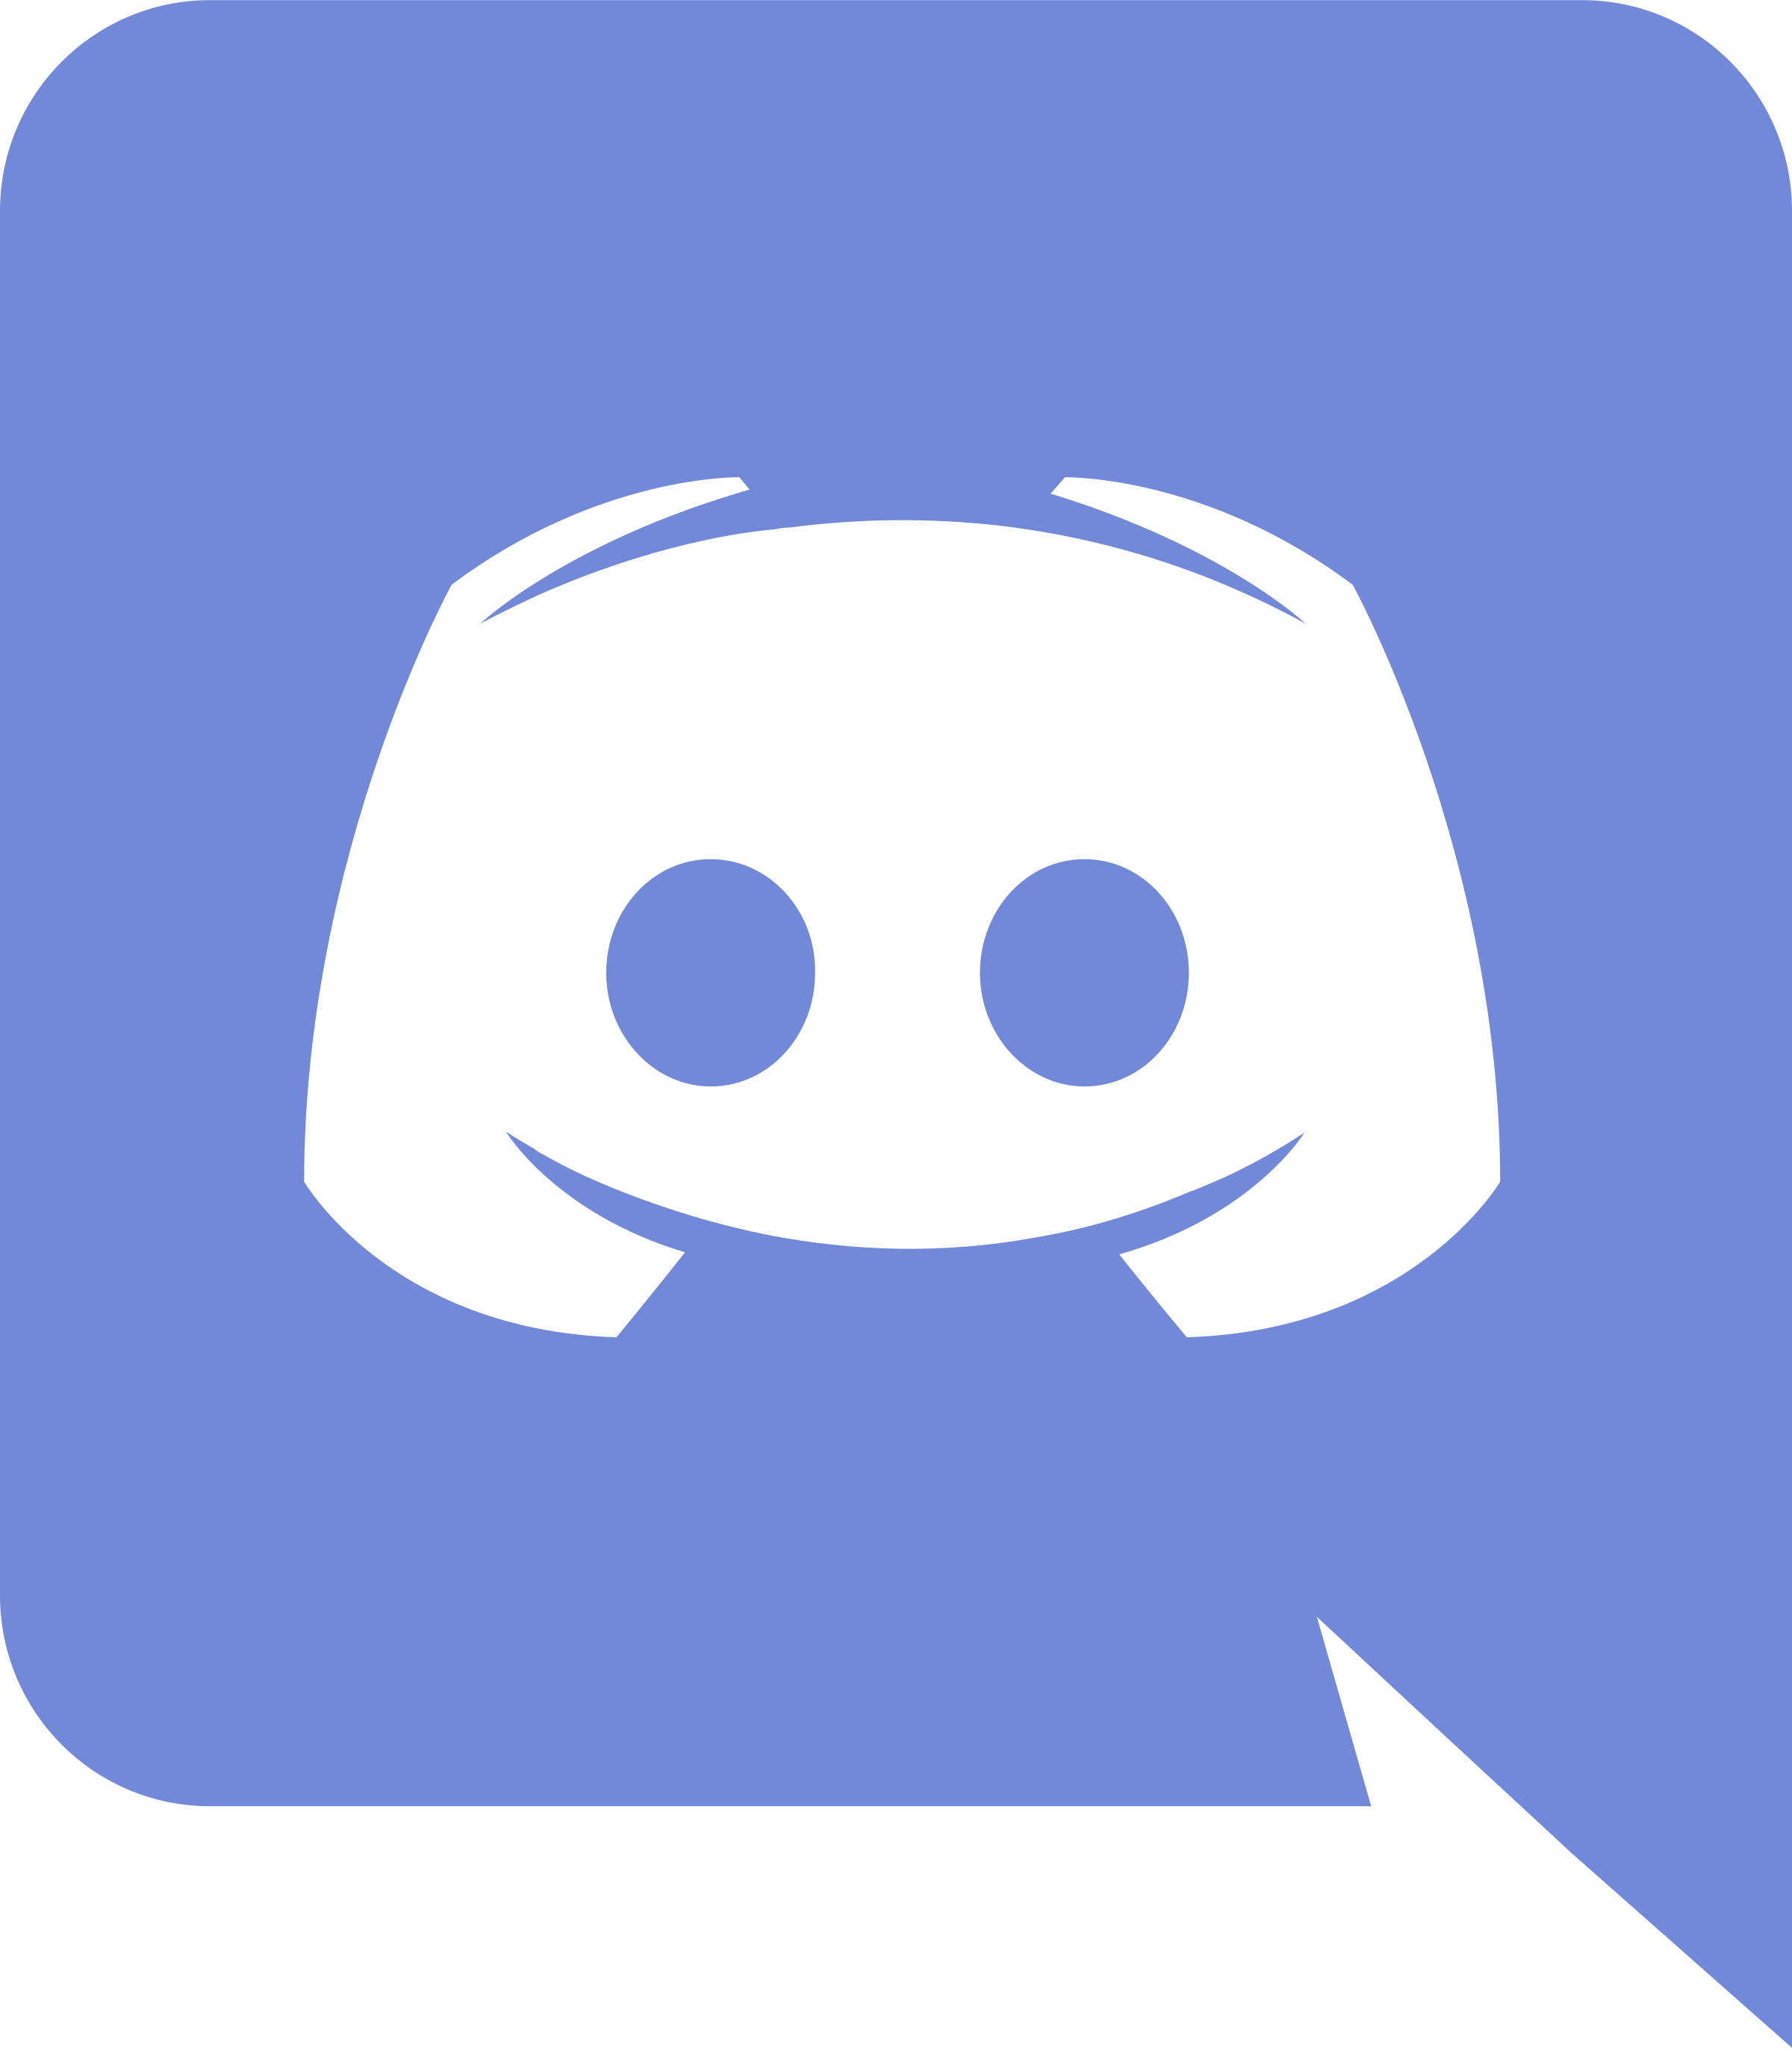 Logo transparent svg vector. Discord icon png